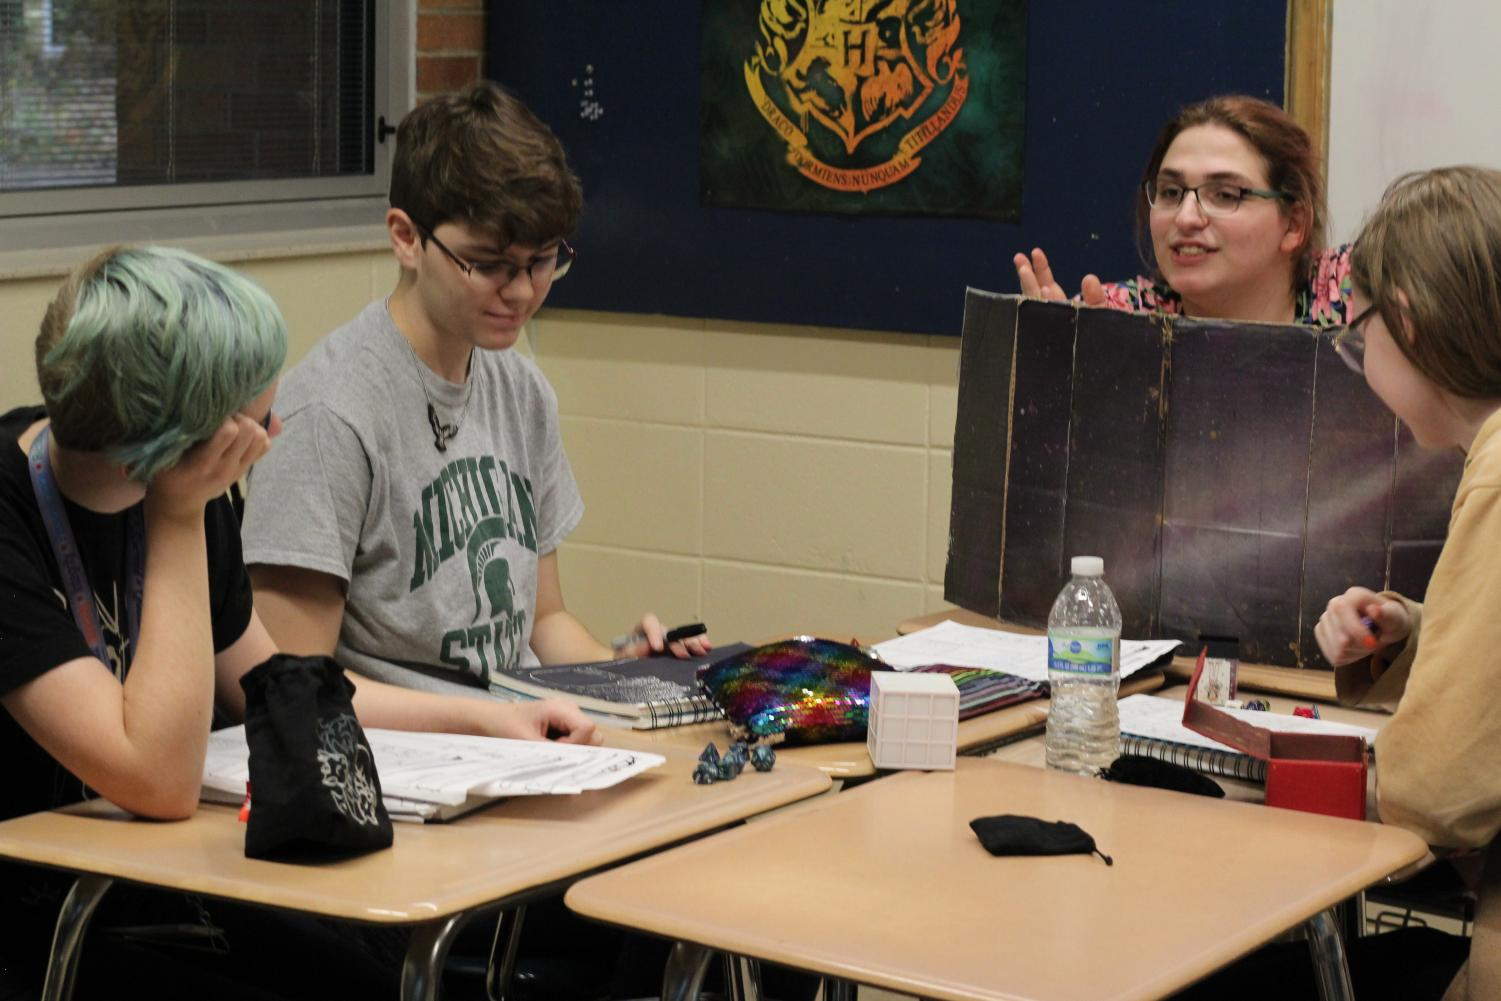 SWORD members Kai Neve-Jones, Asher Gilbert, and Dash DeGrote listen carefully as Dungeon Master Natalie Sweet paints the scene.  (Left to right: Kai Neve-Jones, Asher Gilbert, Natalie Sweet, and Dash Degrote)